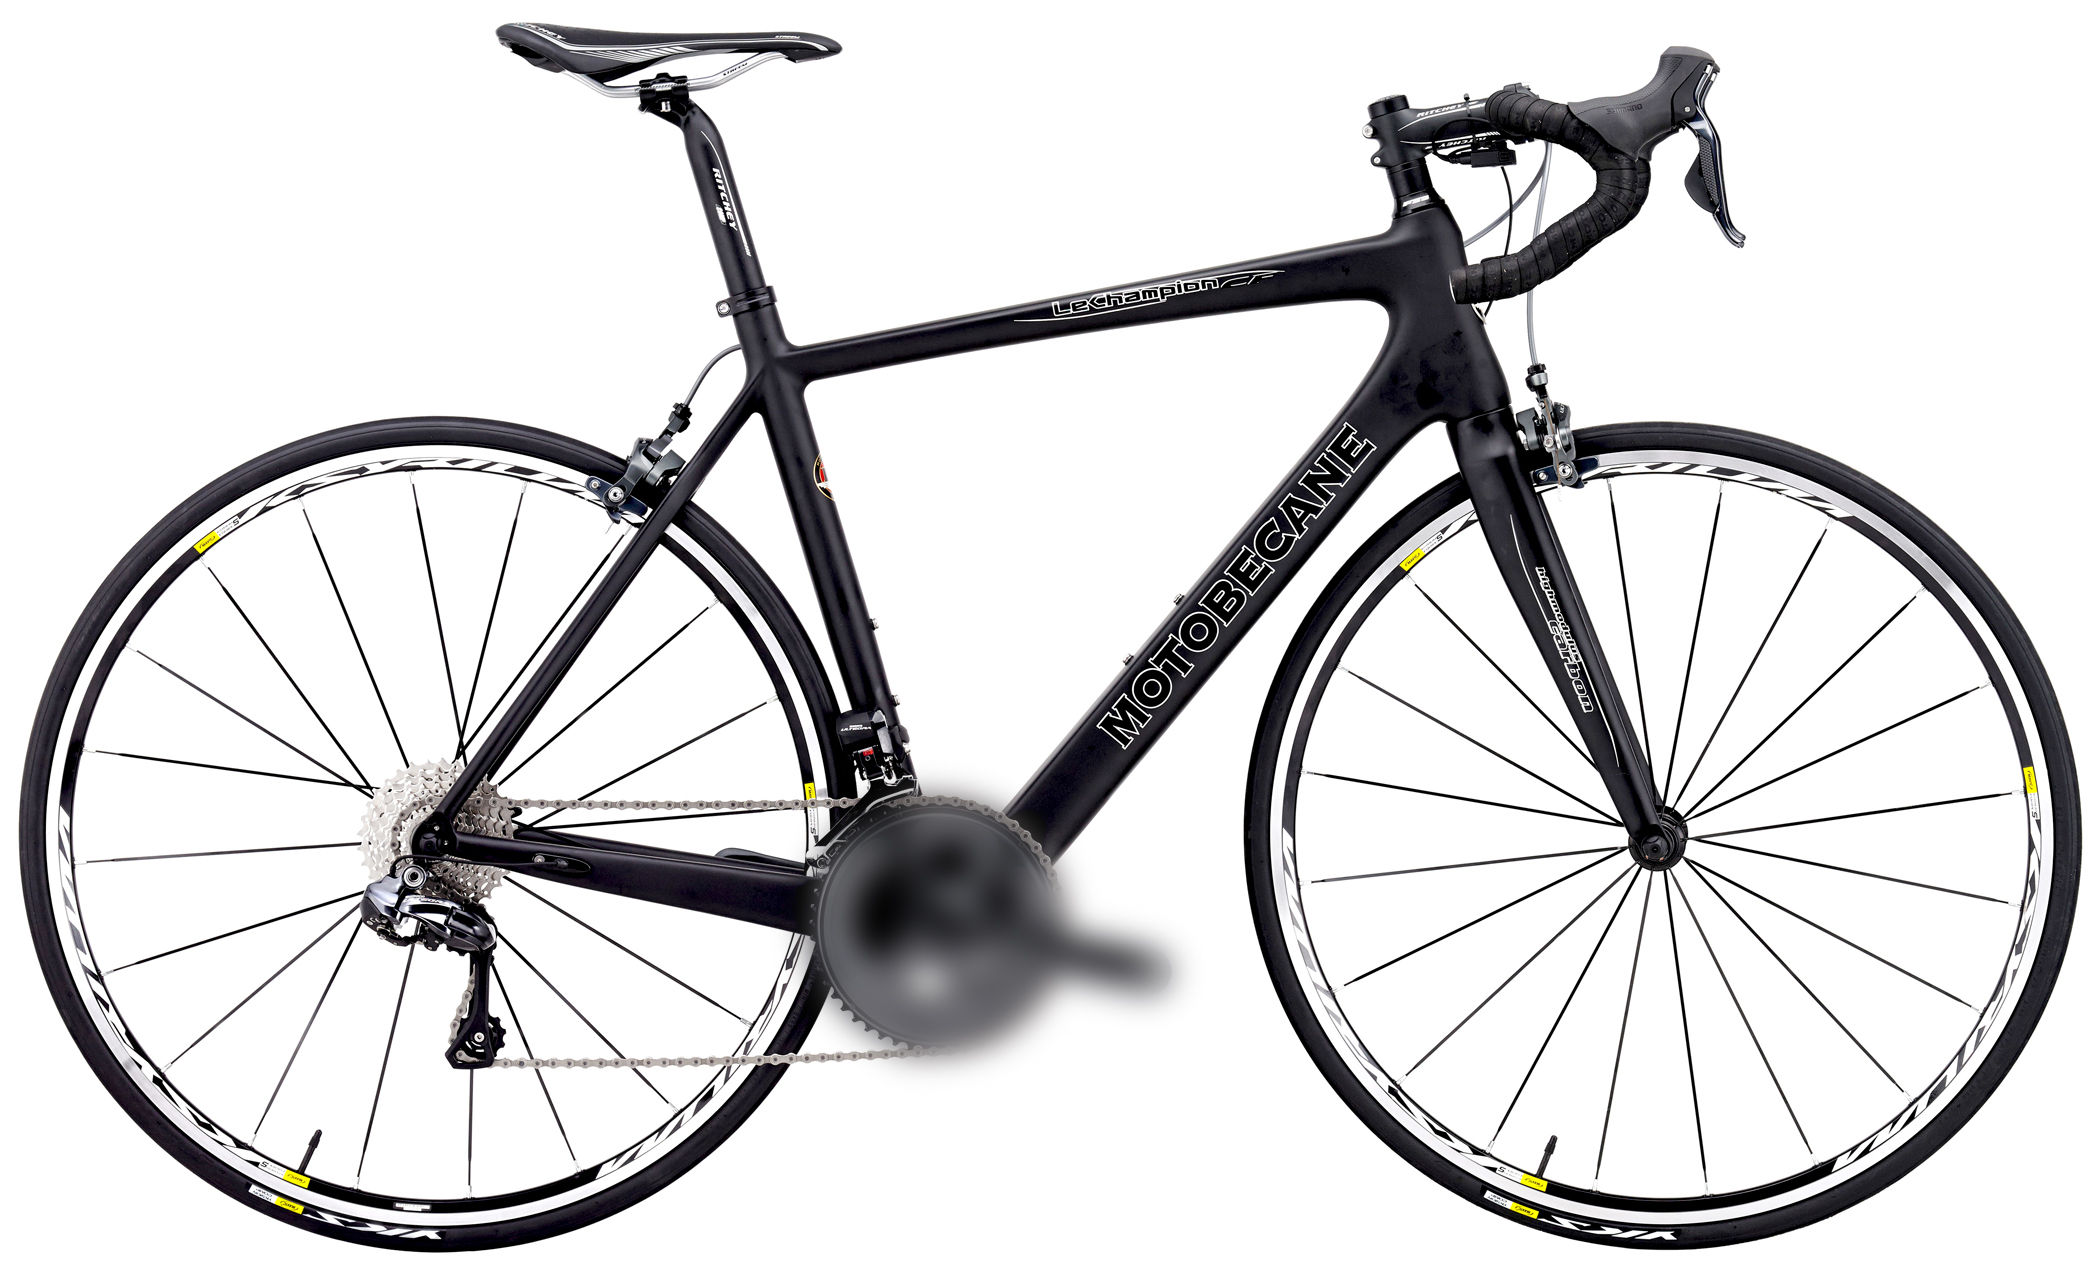 Bikesdirect Motobecane Reviews Motobecane Le Champion CF